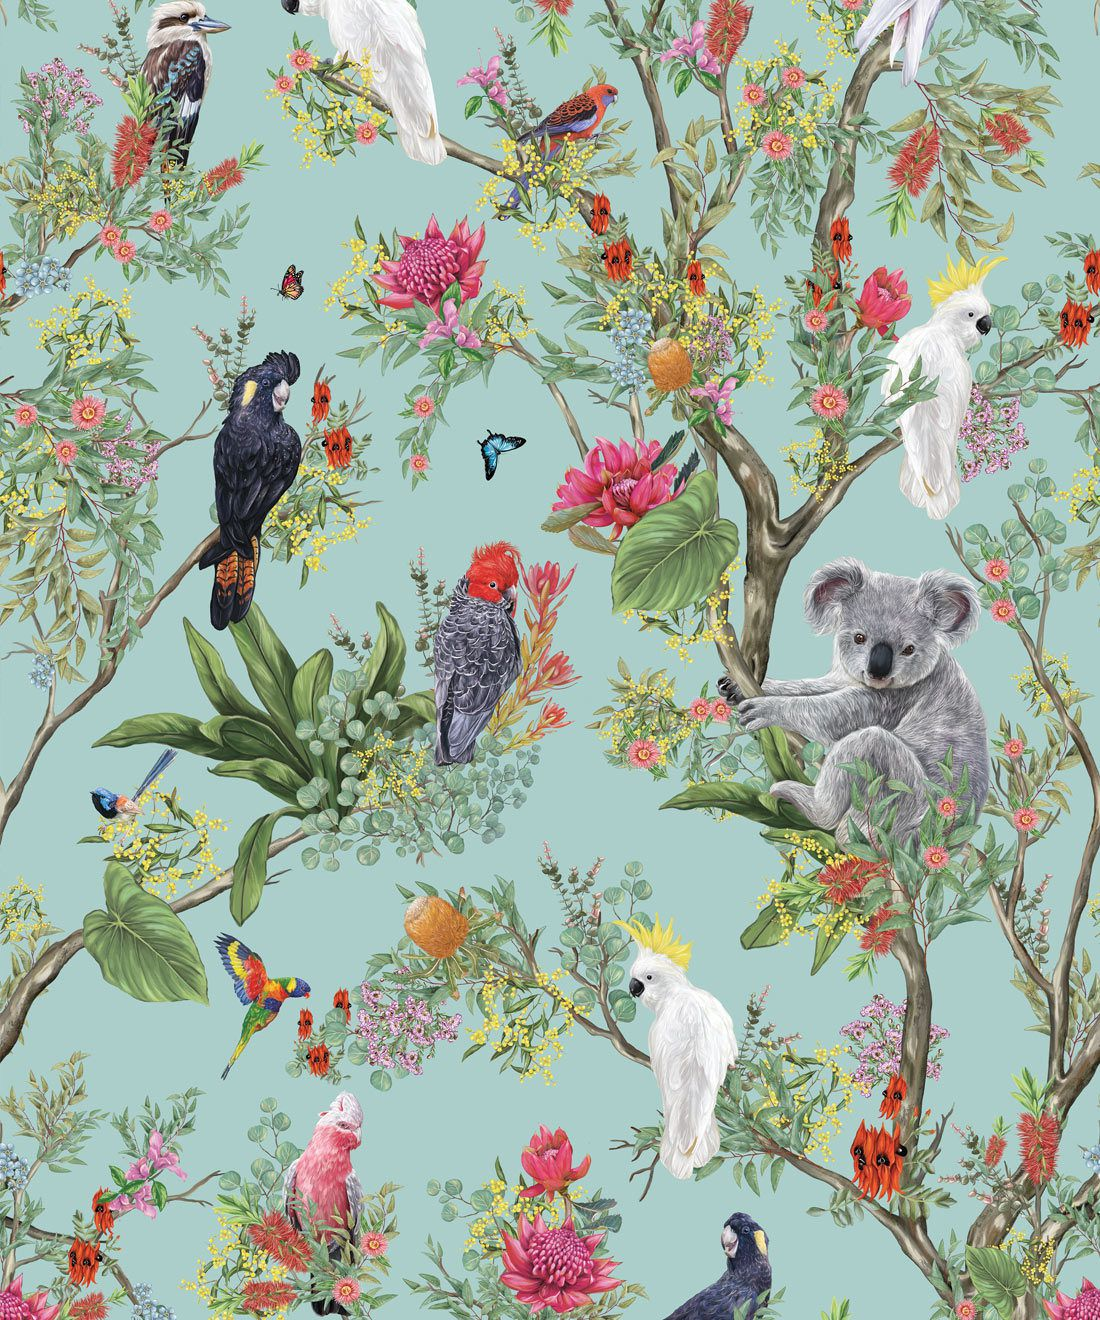 Australia Wallpaper • Cockatoos, Koalas, Parrots, Finches • Milton & King Europe • Mint Green Wallpaper Swatch